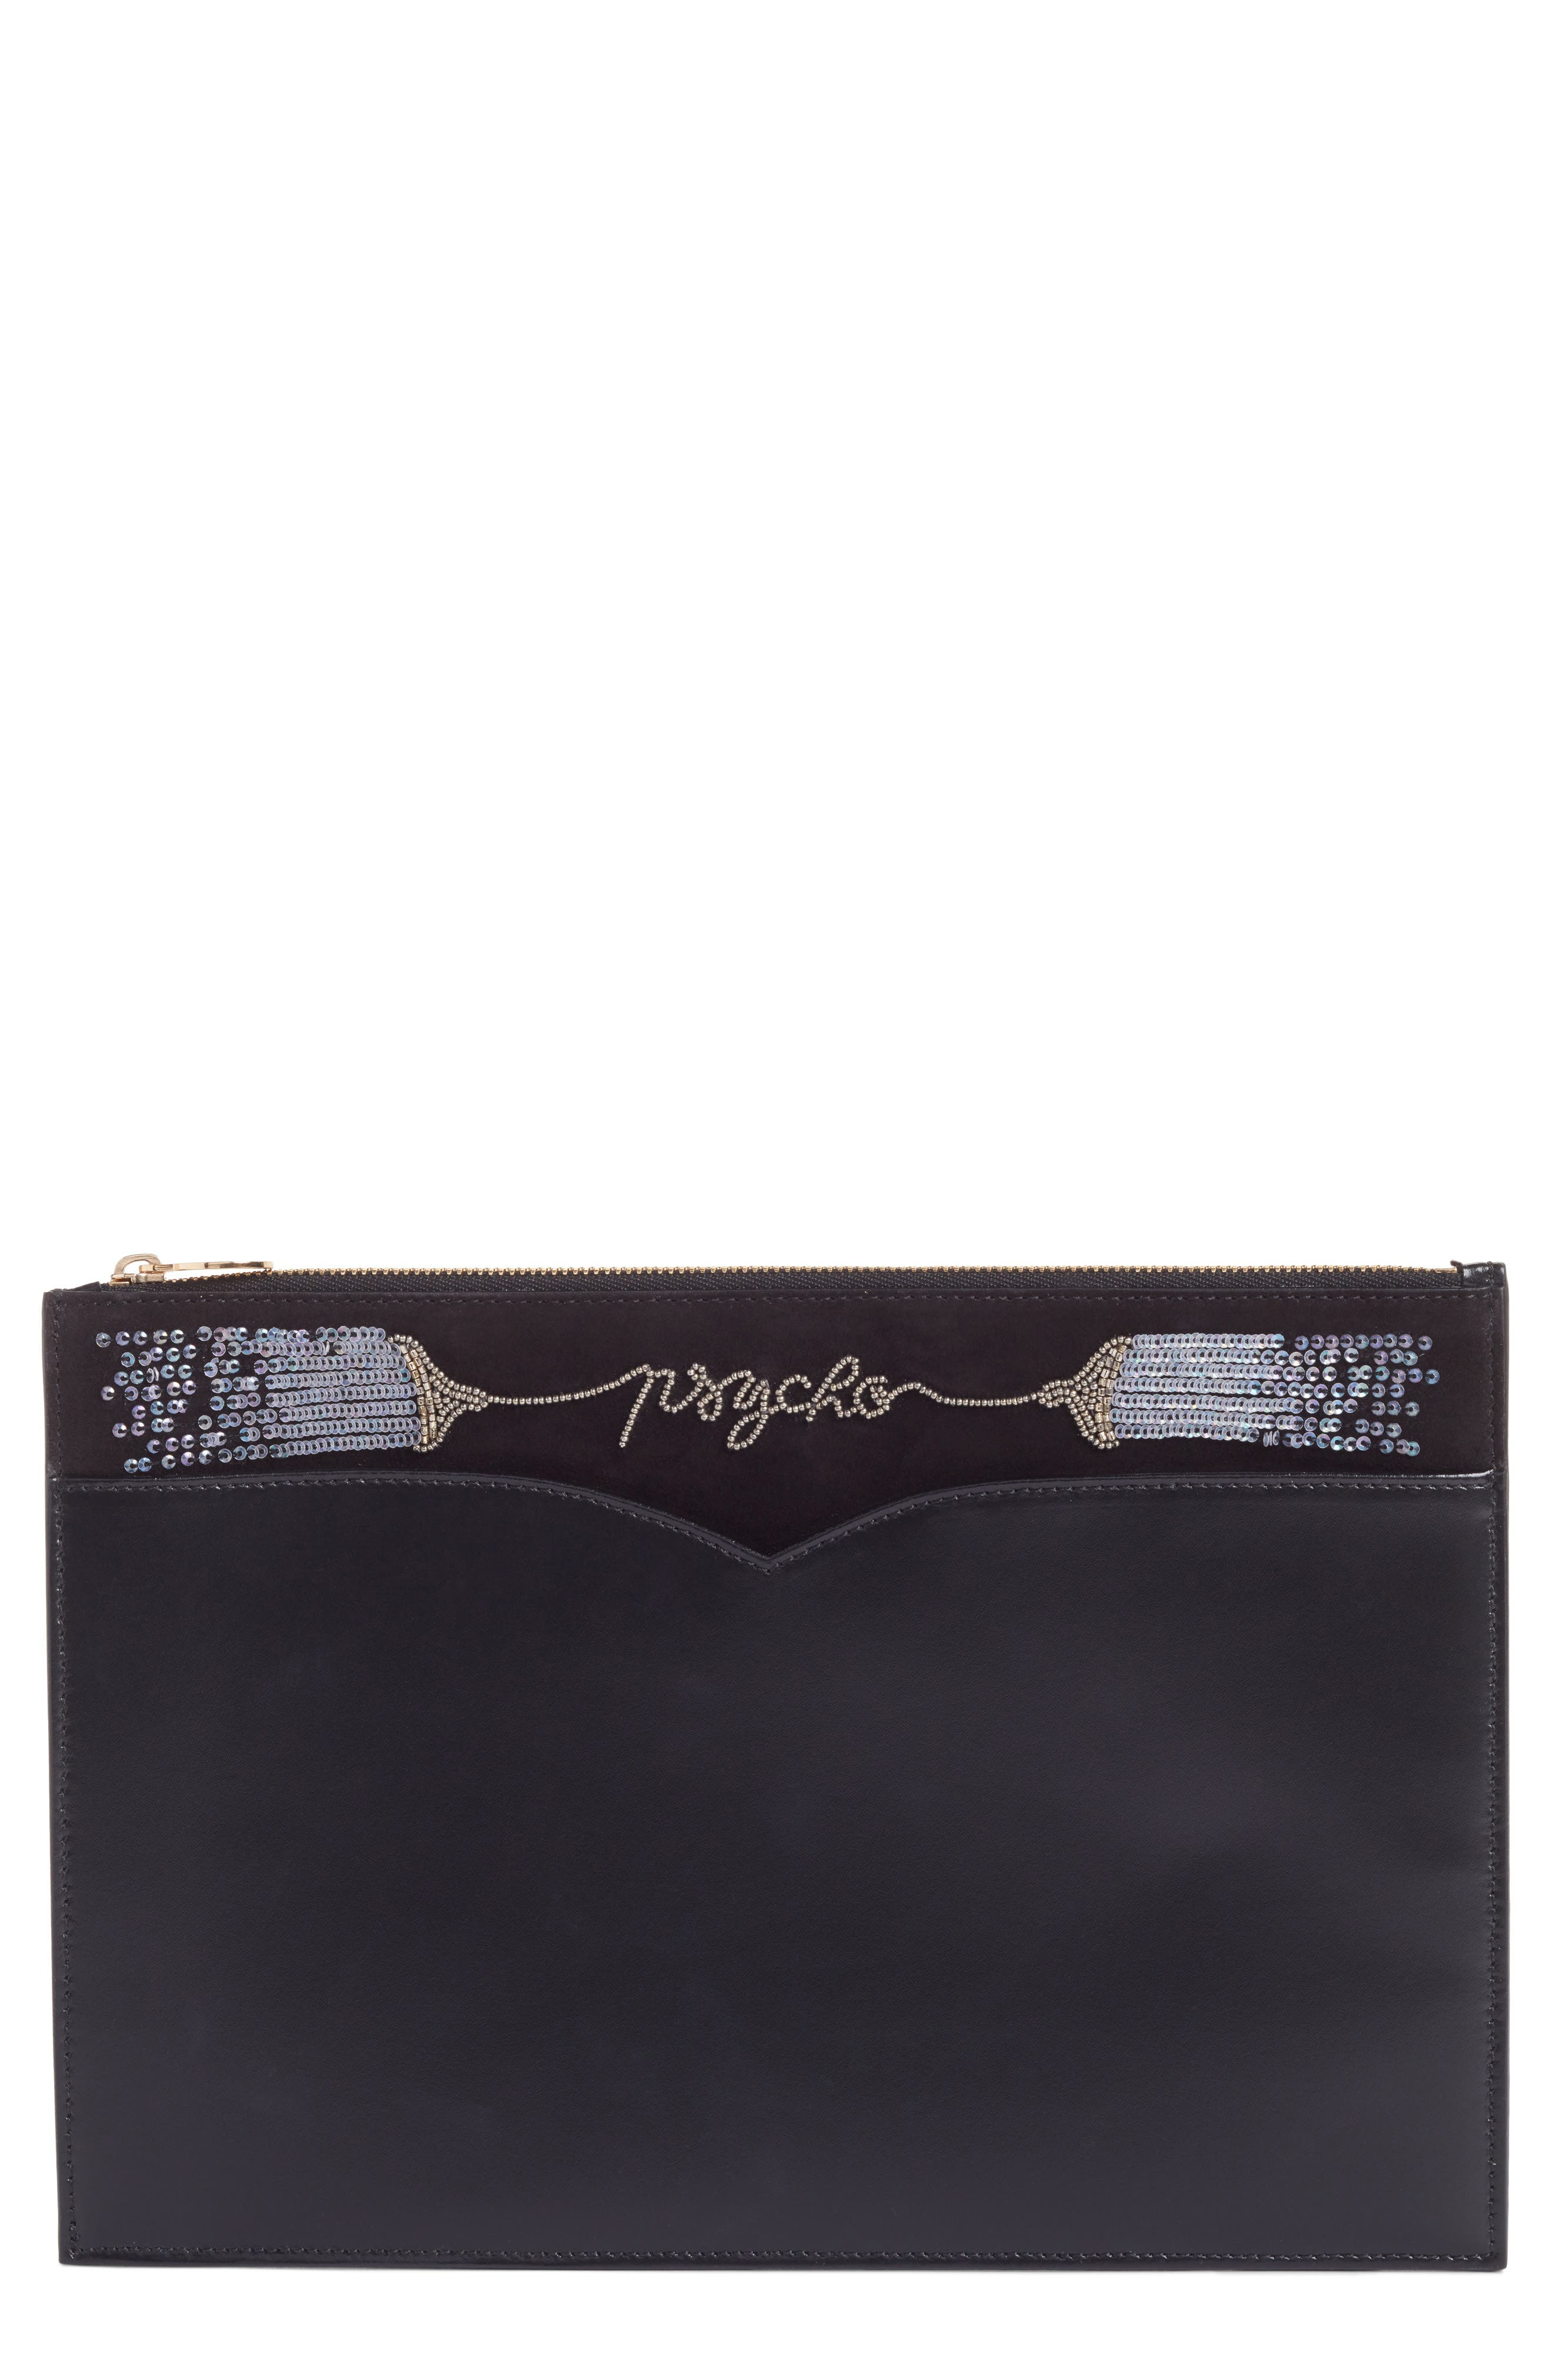 Olympia Le-Tan Medium Embellished Leather Zip Pouch